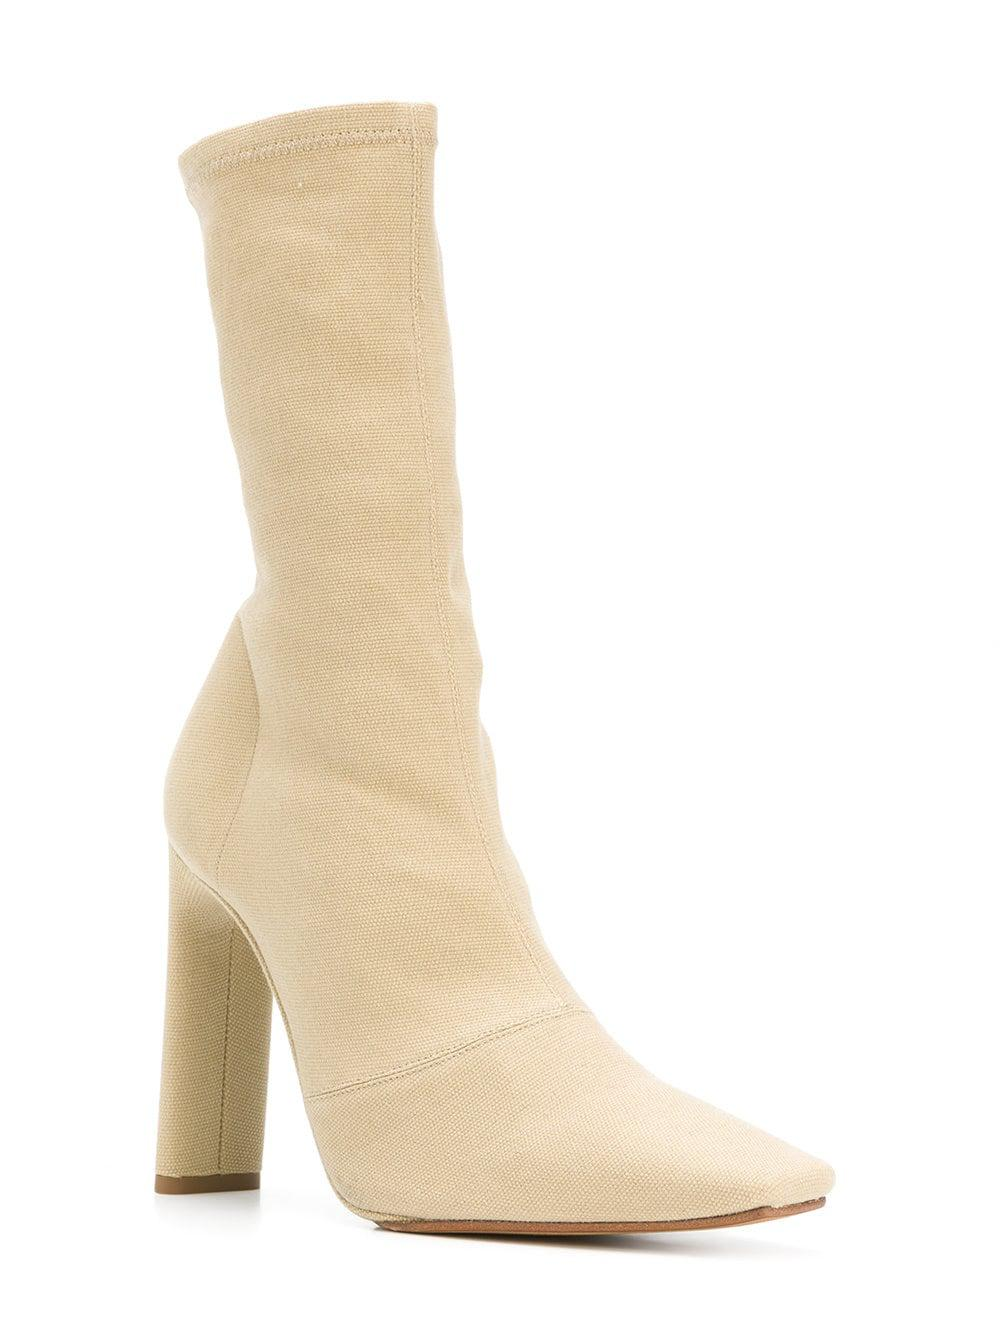 87d76936187 Lyst - Yeezy Season 6 Ankle Boots in Natural - Save 72%